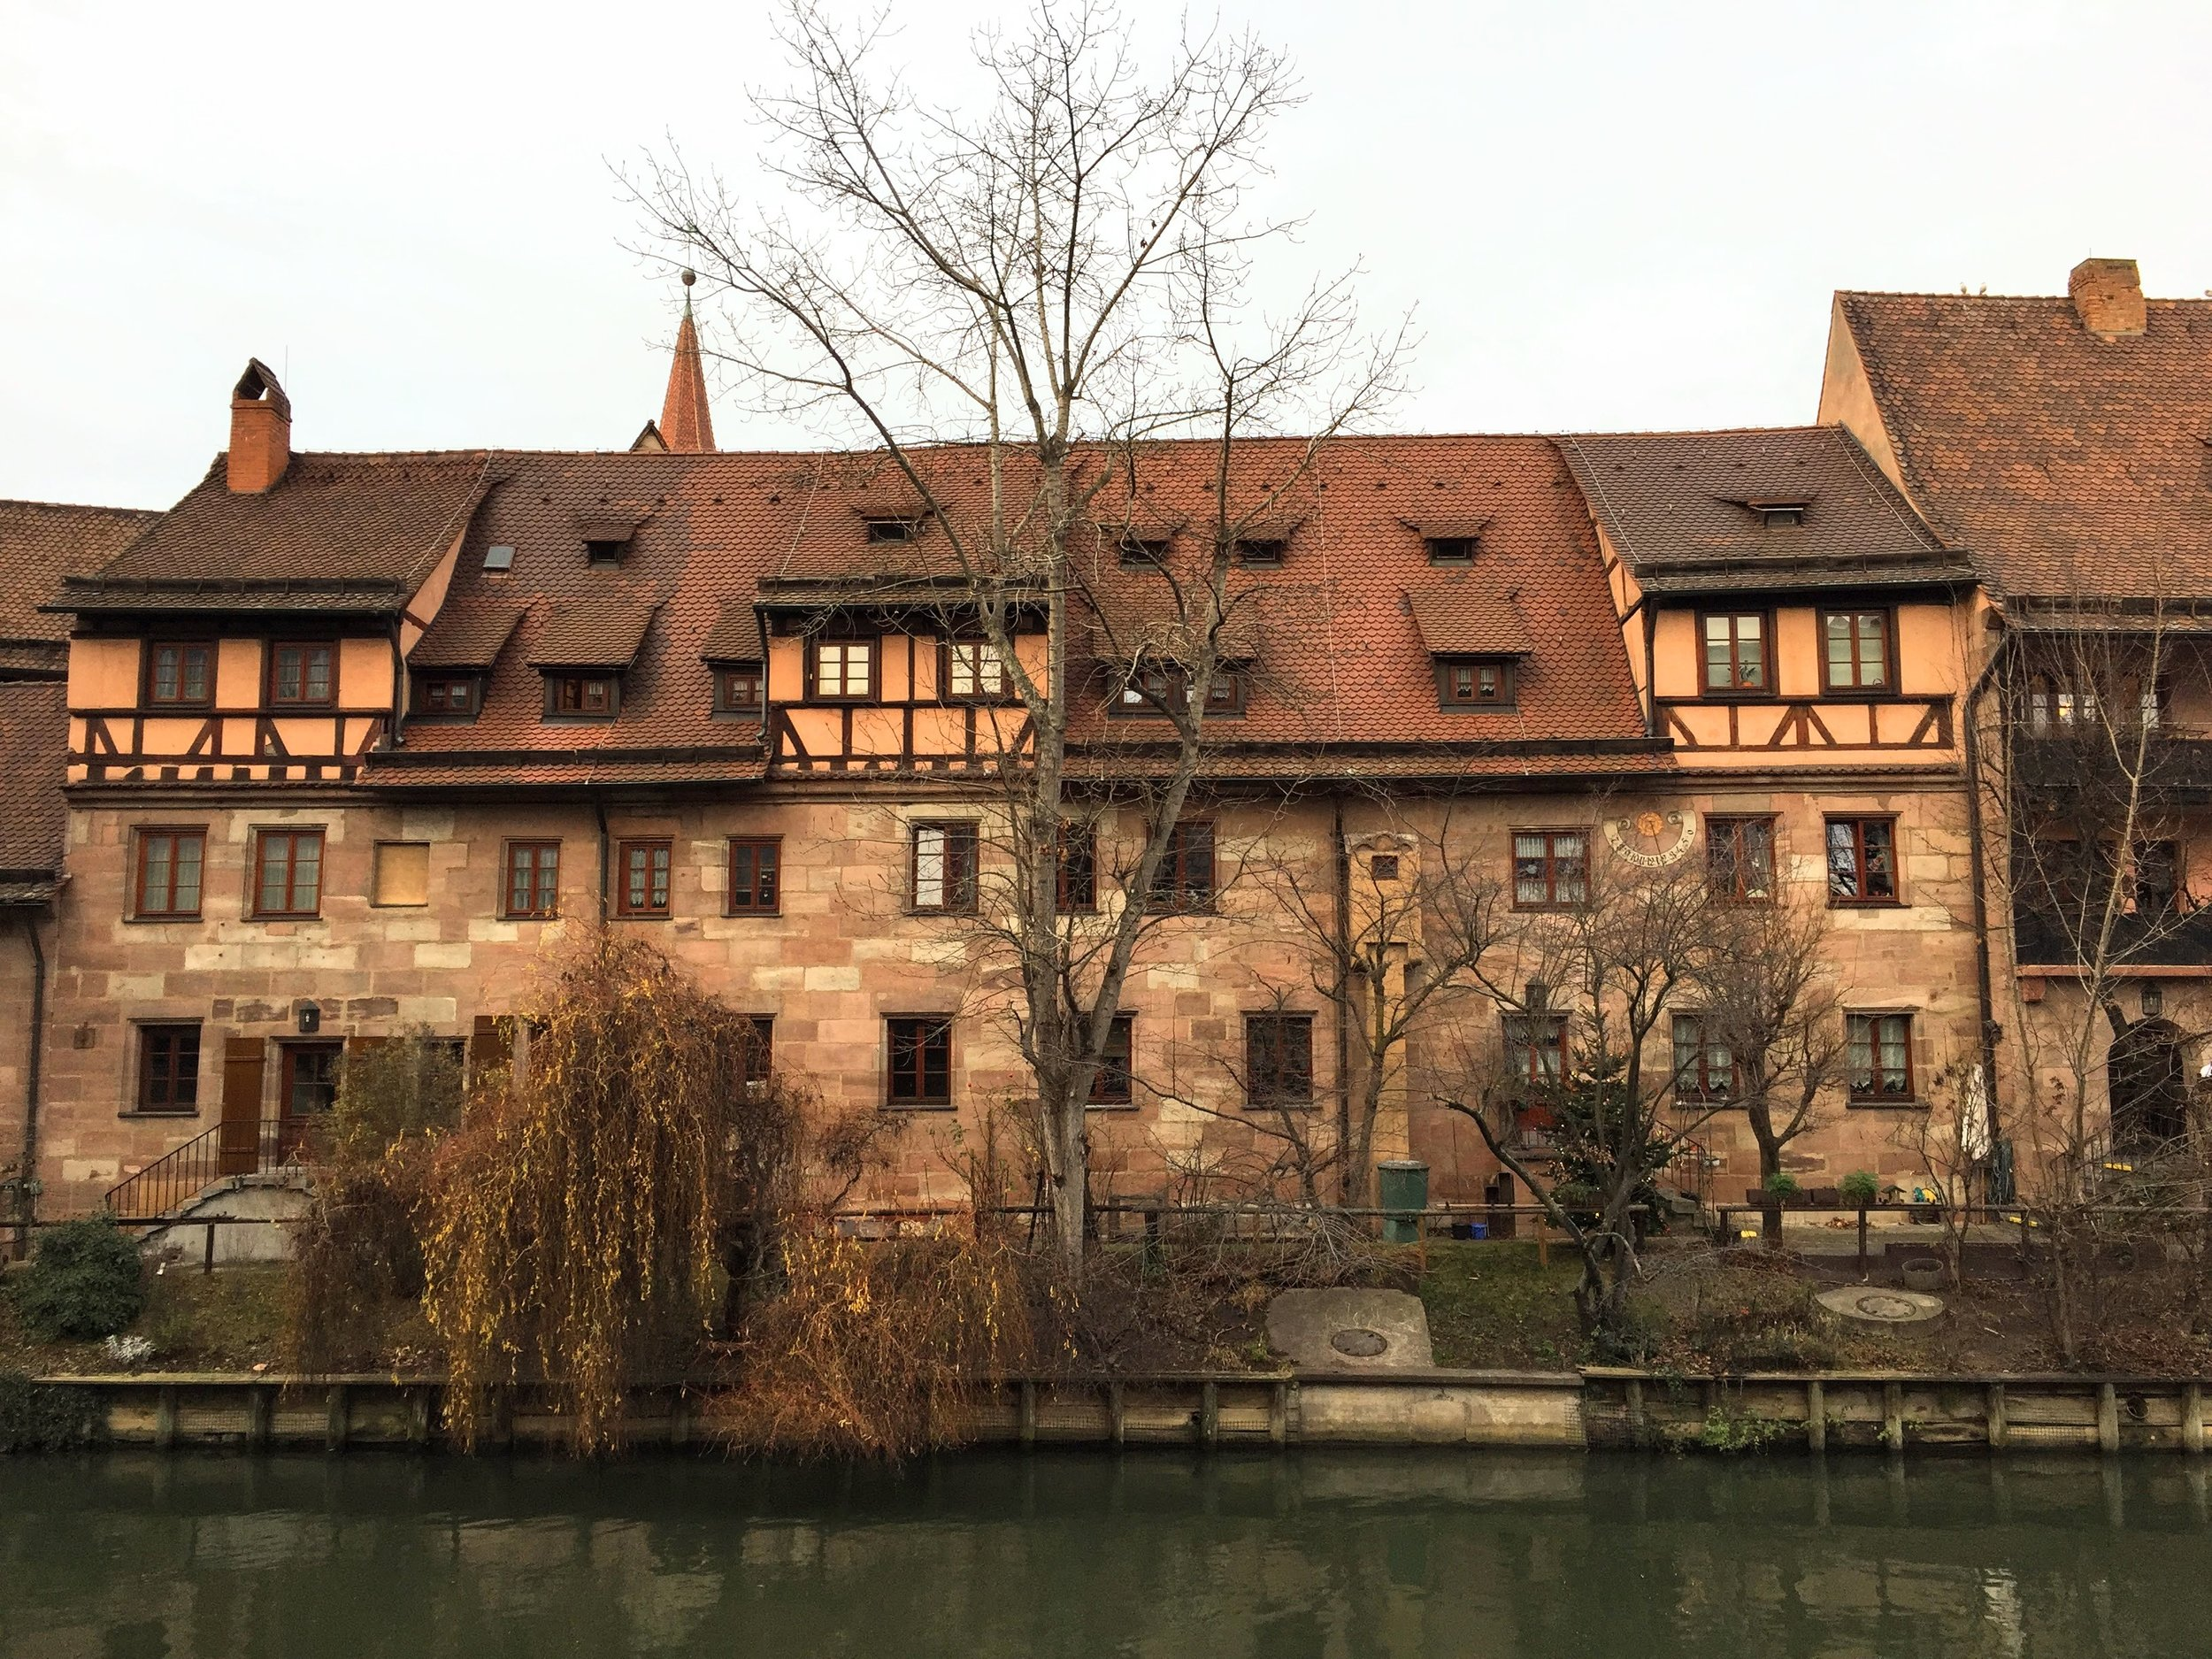 Enjoying the architecture in our last stop //Nuremburg, Germany